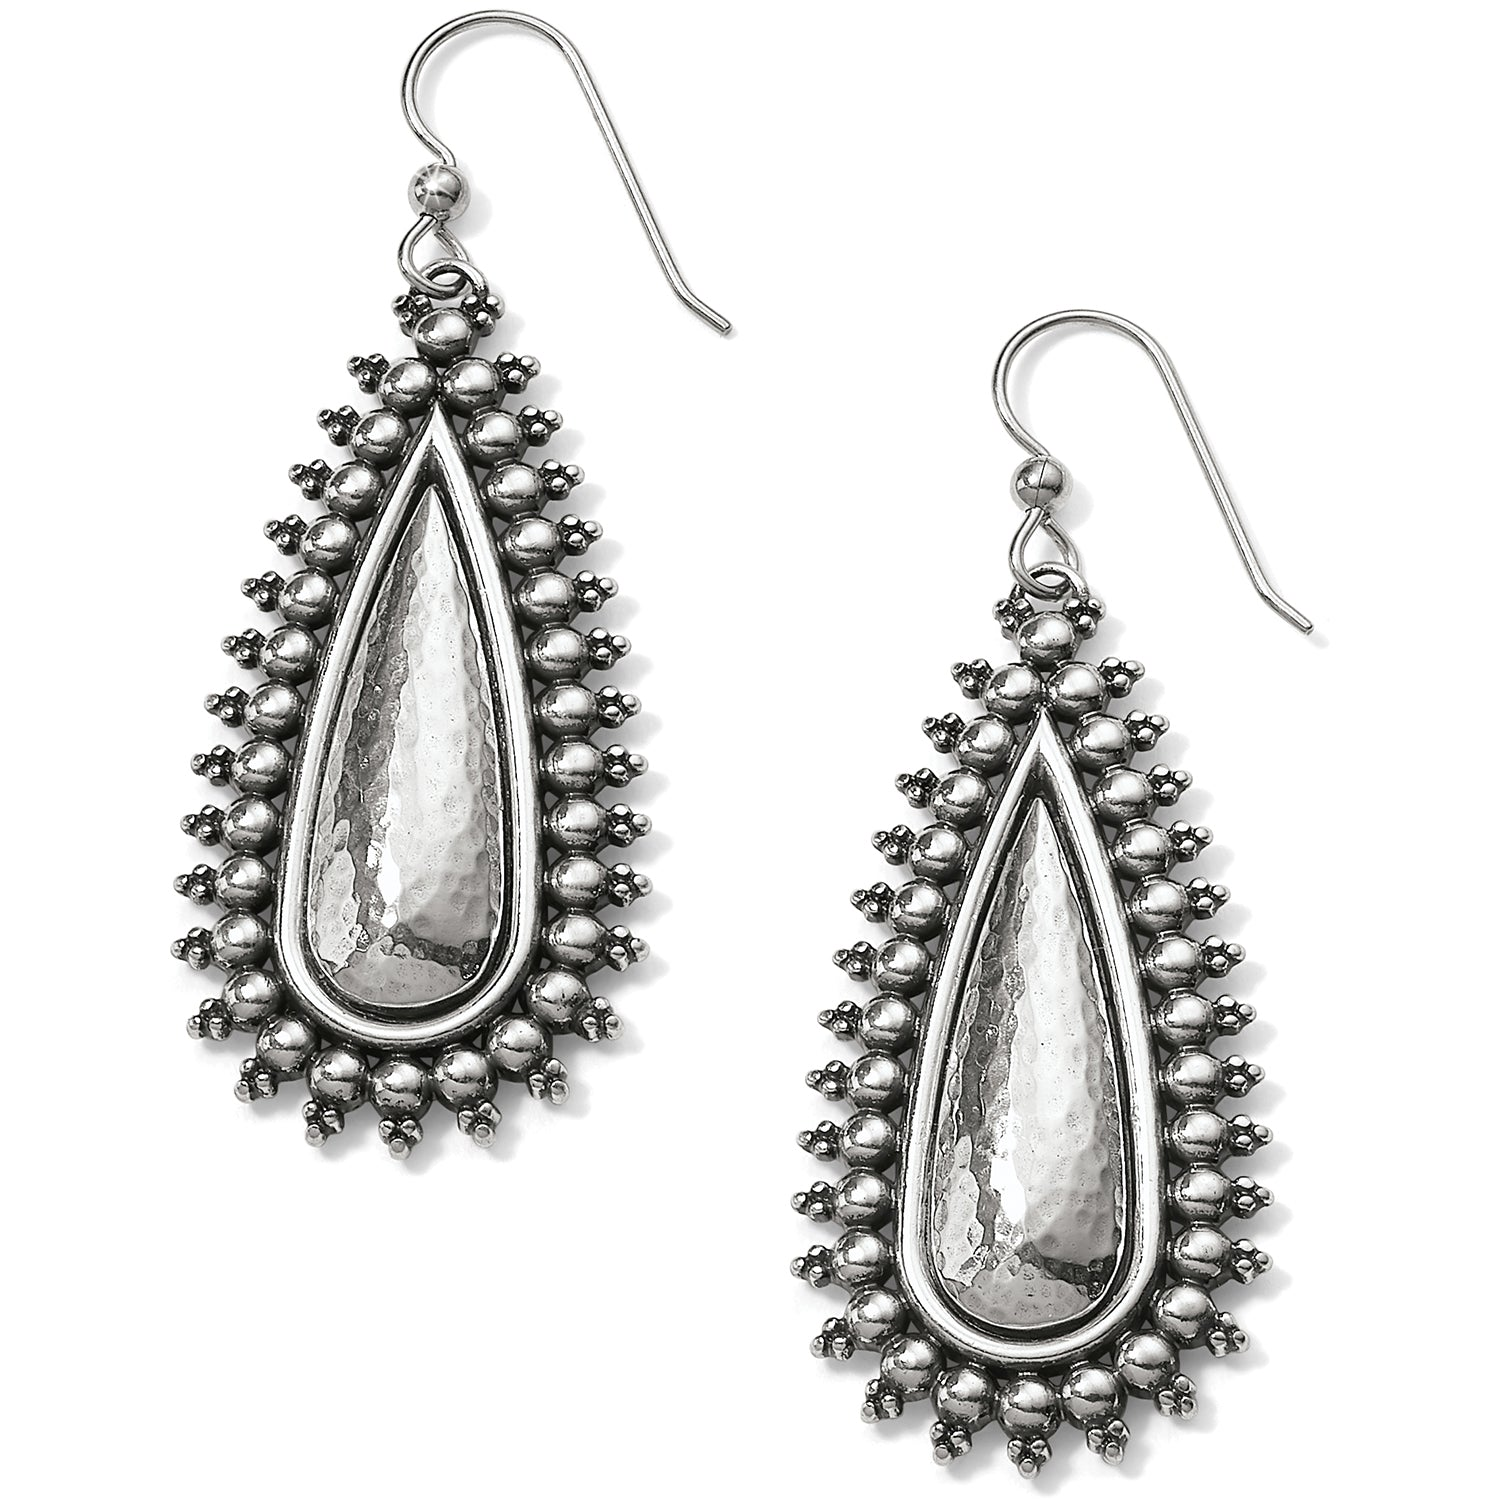 Brighton Jewelry Telluride Teardrop French Wire Earrings. At once elegantly sporty and lively, this jewelry collection offers two old-world handcrafting techniques--hammering and granulation. These statement-making drops lend an instant Boho vibe to your look.